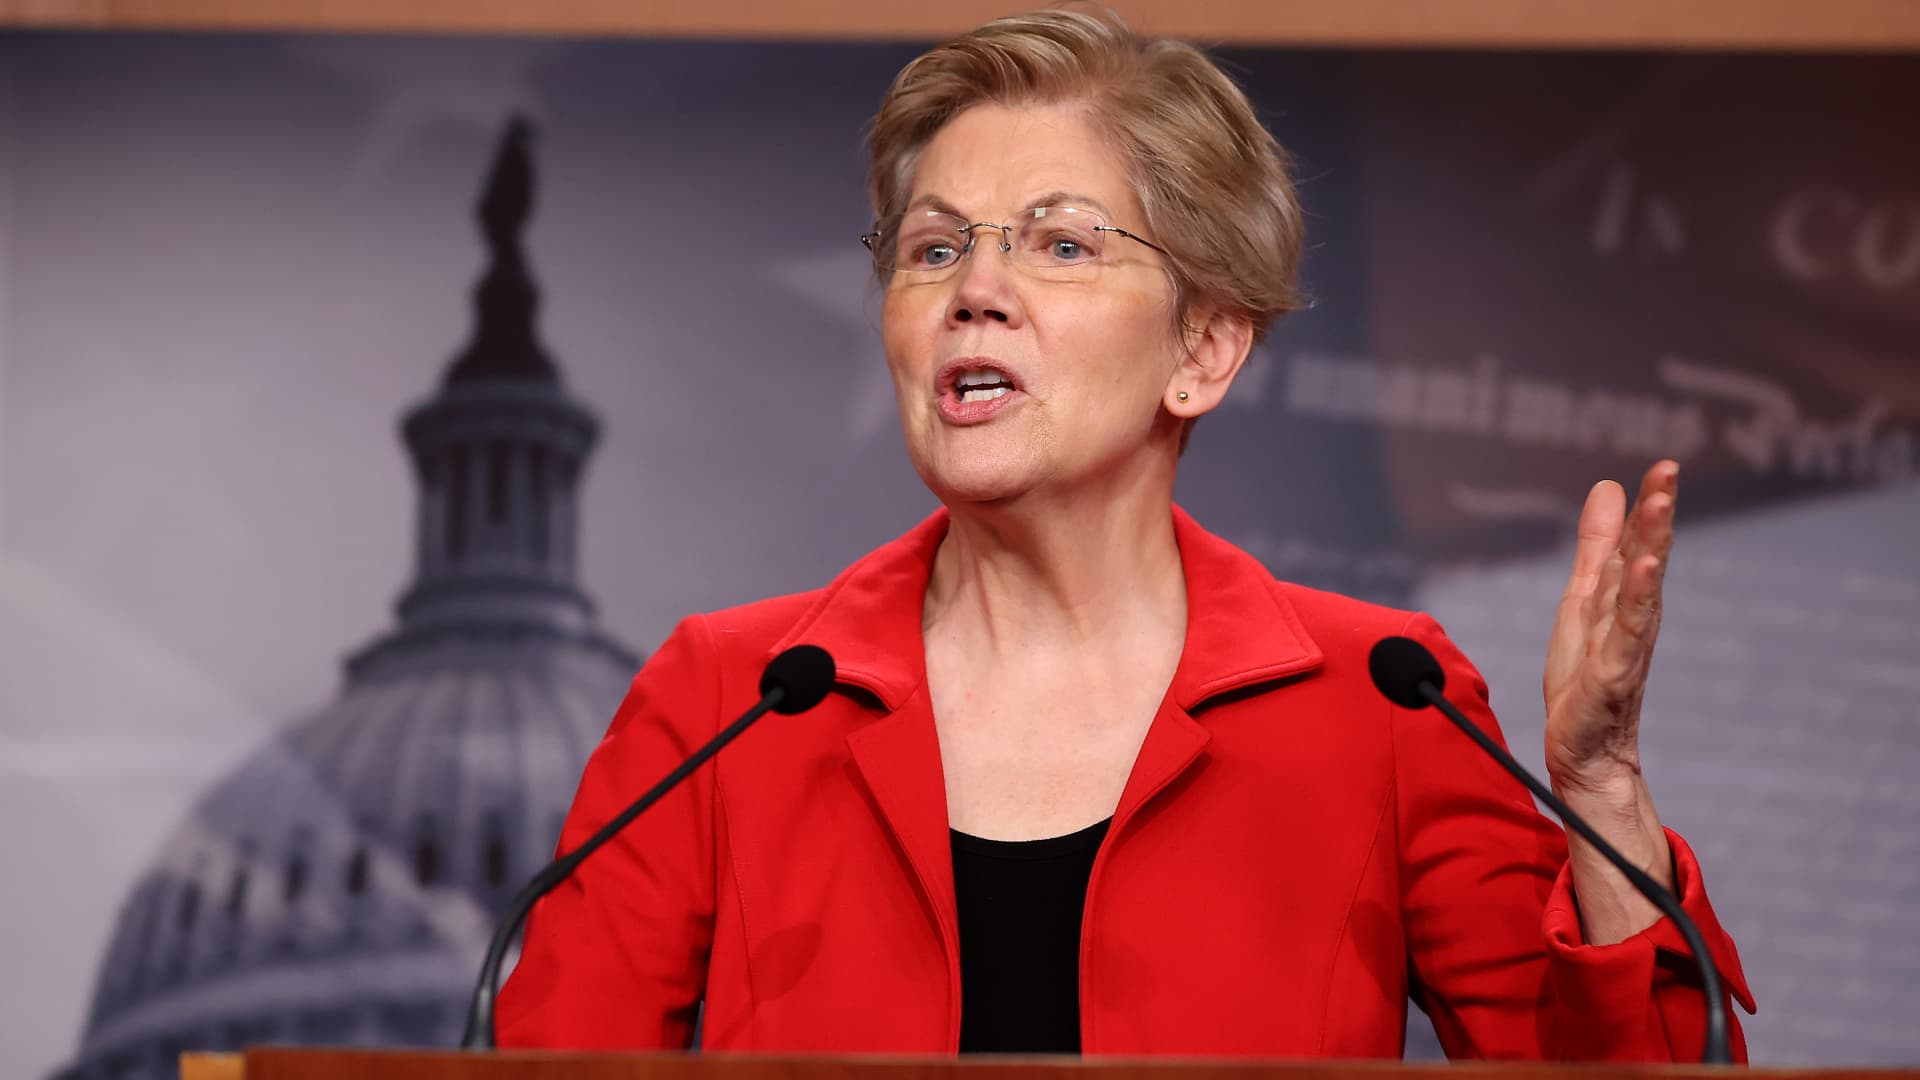 Sen. Elizabeth Warren, D-Mass., holds a news conference to announce legislation that would tax the net worth of America's wealthiest individuals on March 1, 2021 in Washington.